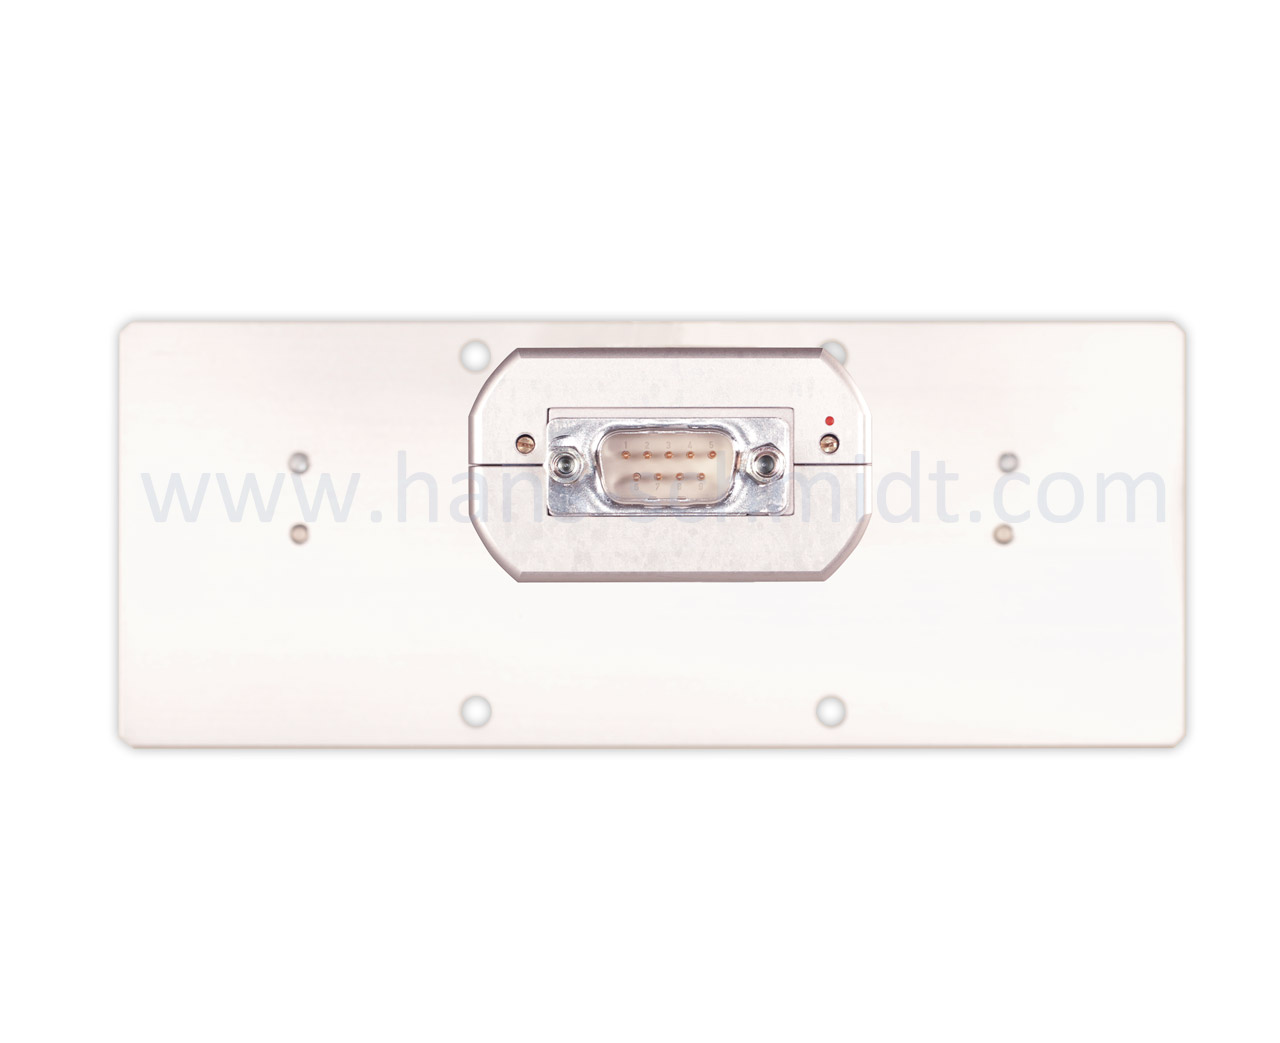 Tension Sensor Fsh Stationary Electronic Device